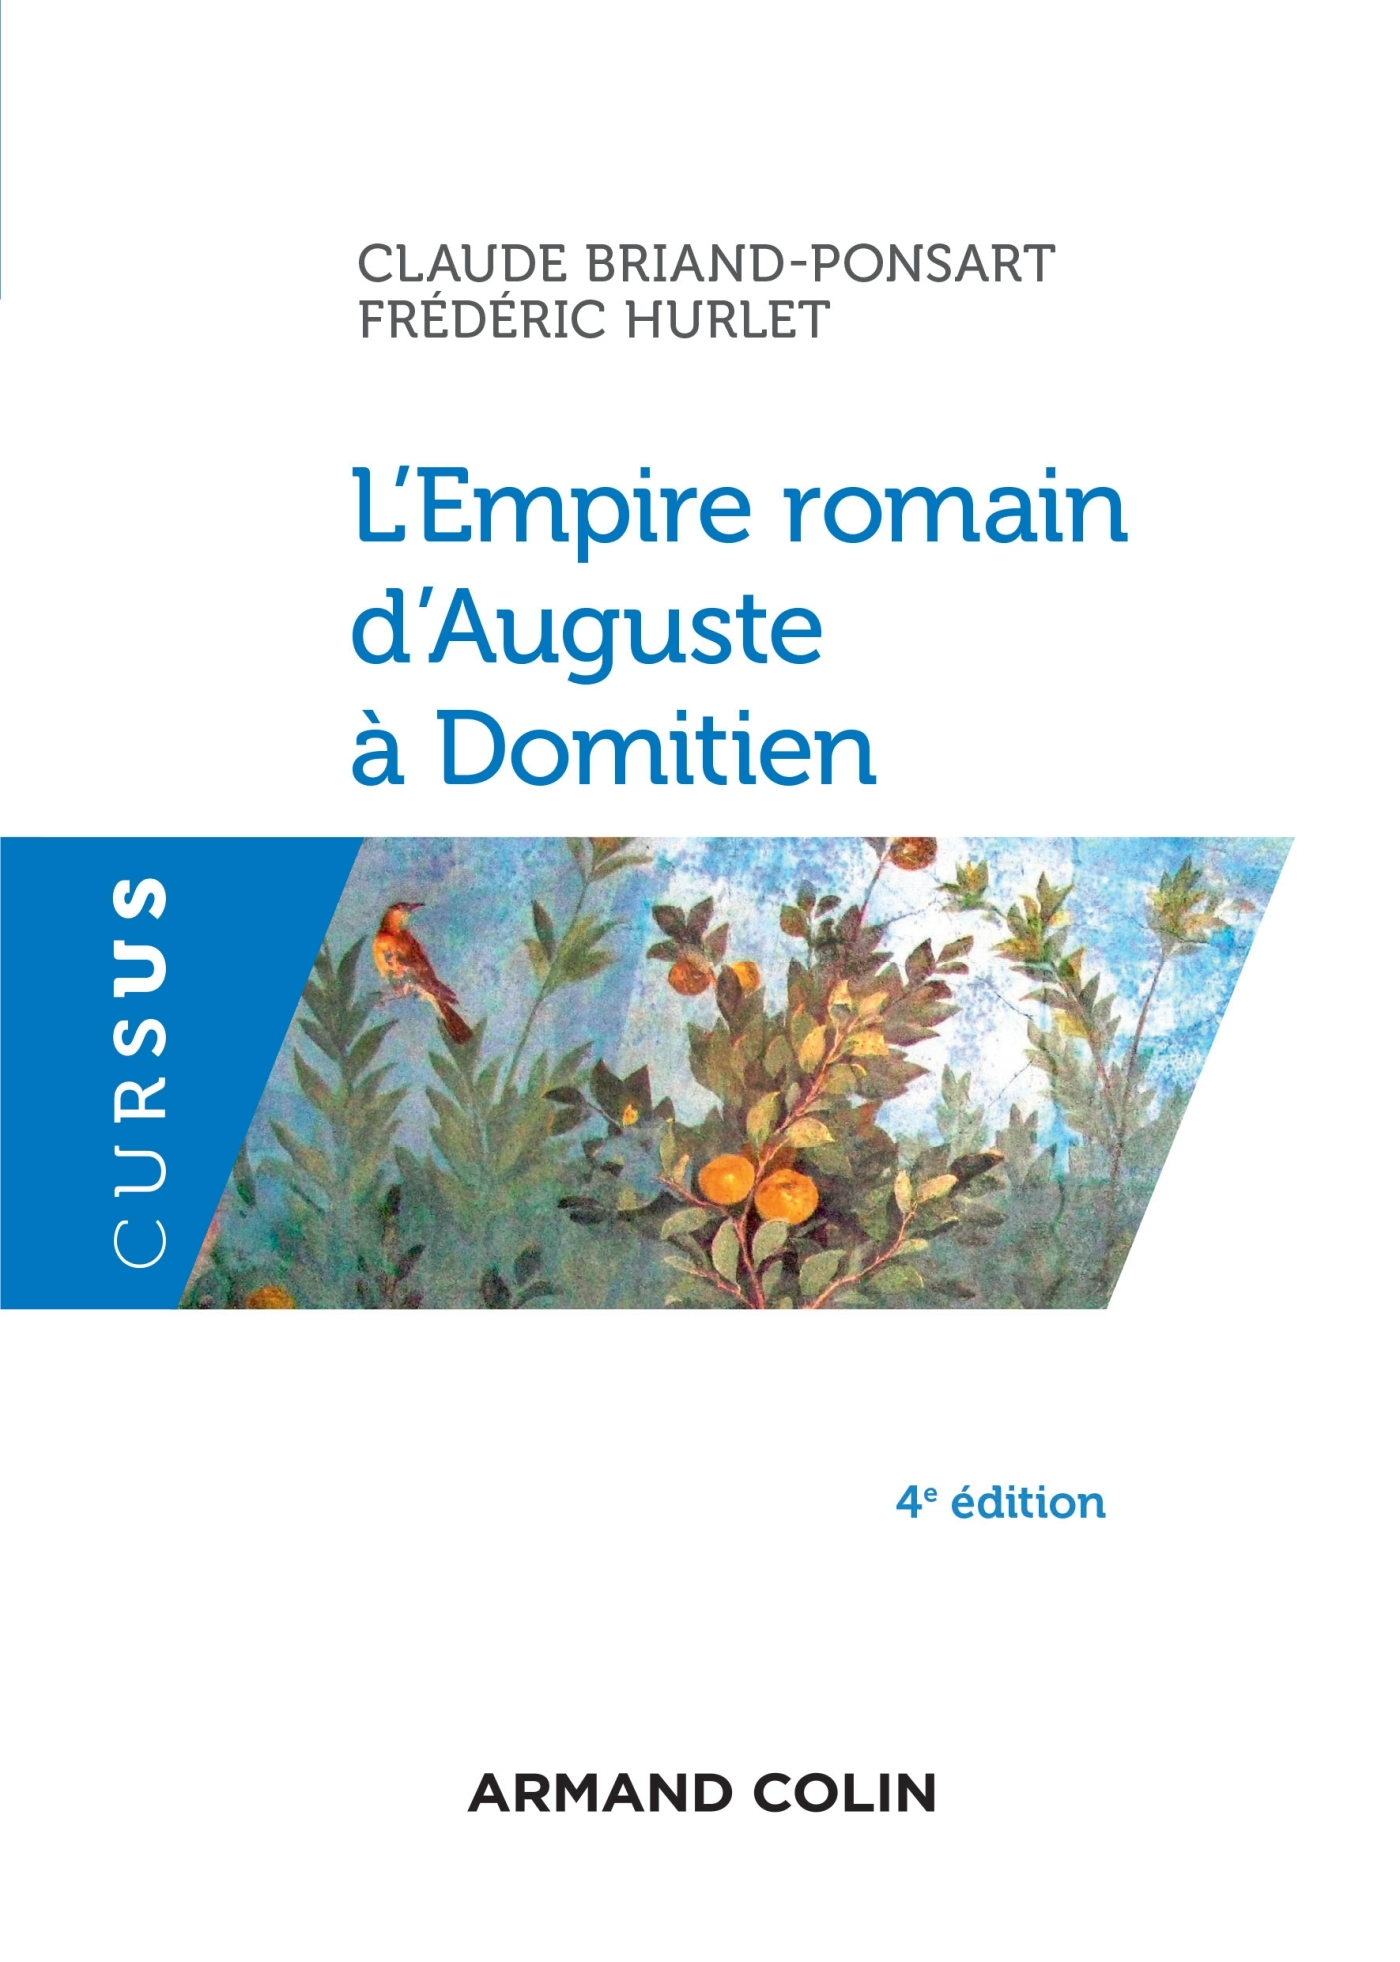 L'EMPIRE ROMAIN D'AUGUSTE A DOMITIEN - 4E ED.